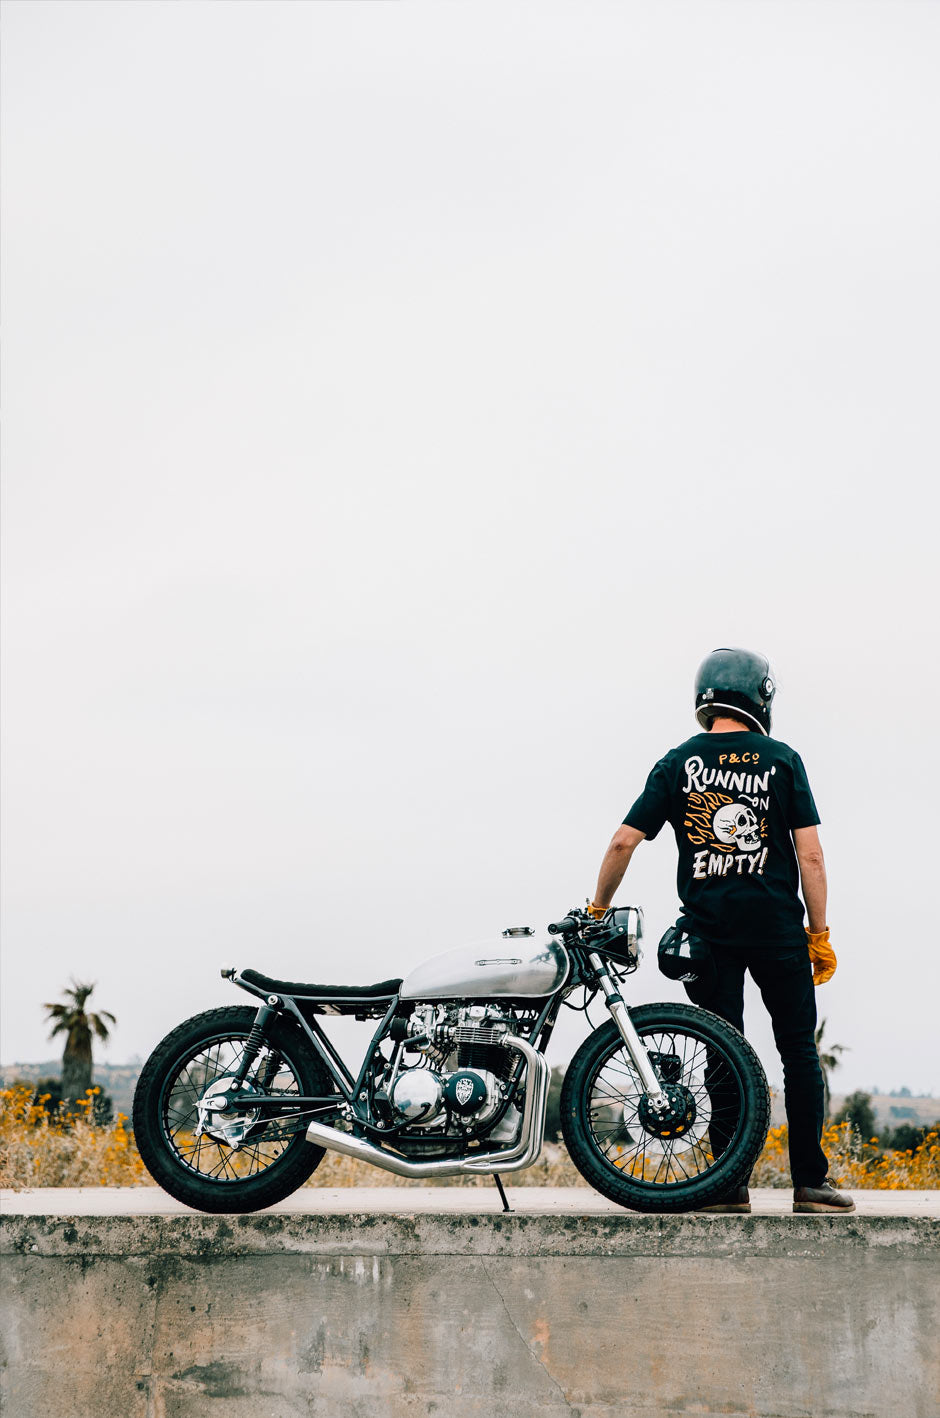 P&Co Runnin' On Empty T-Shirt with Cafe Racer Bike